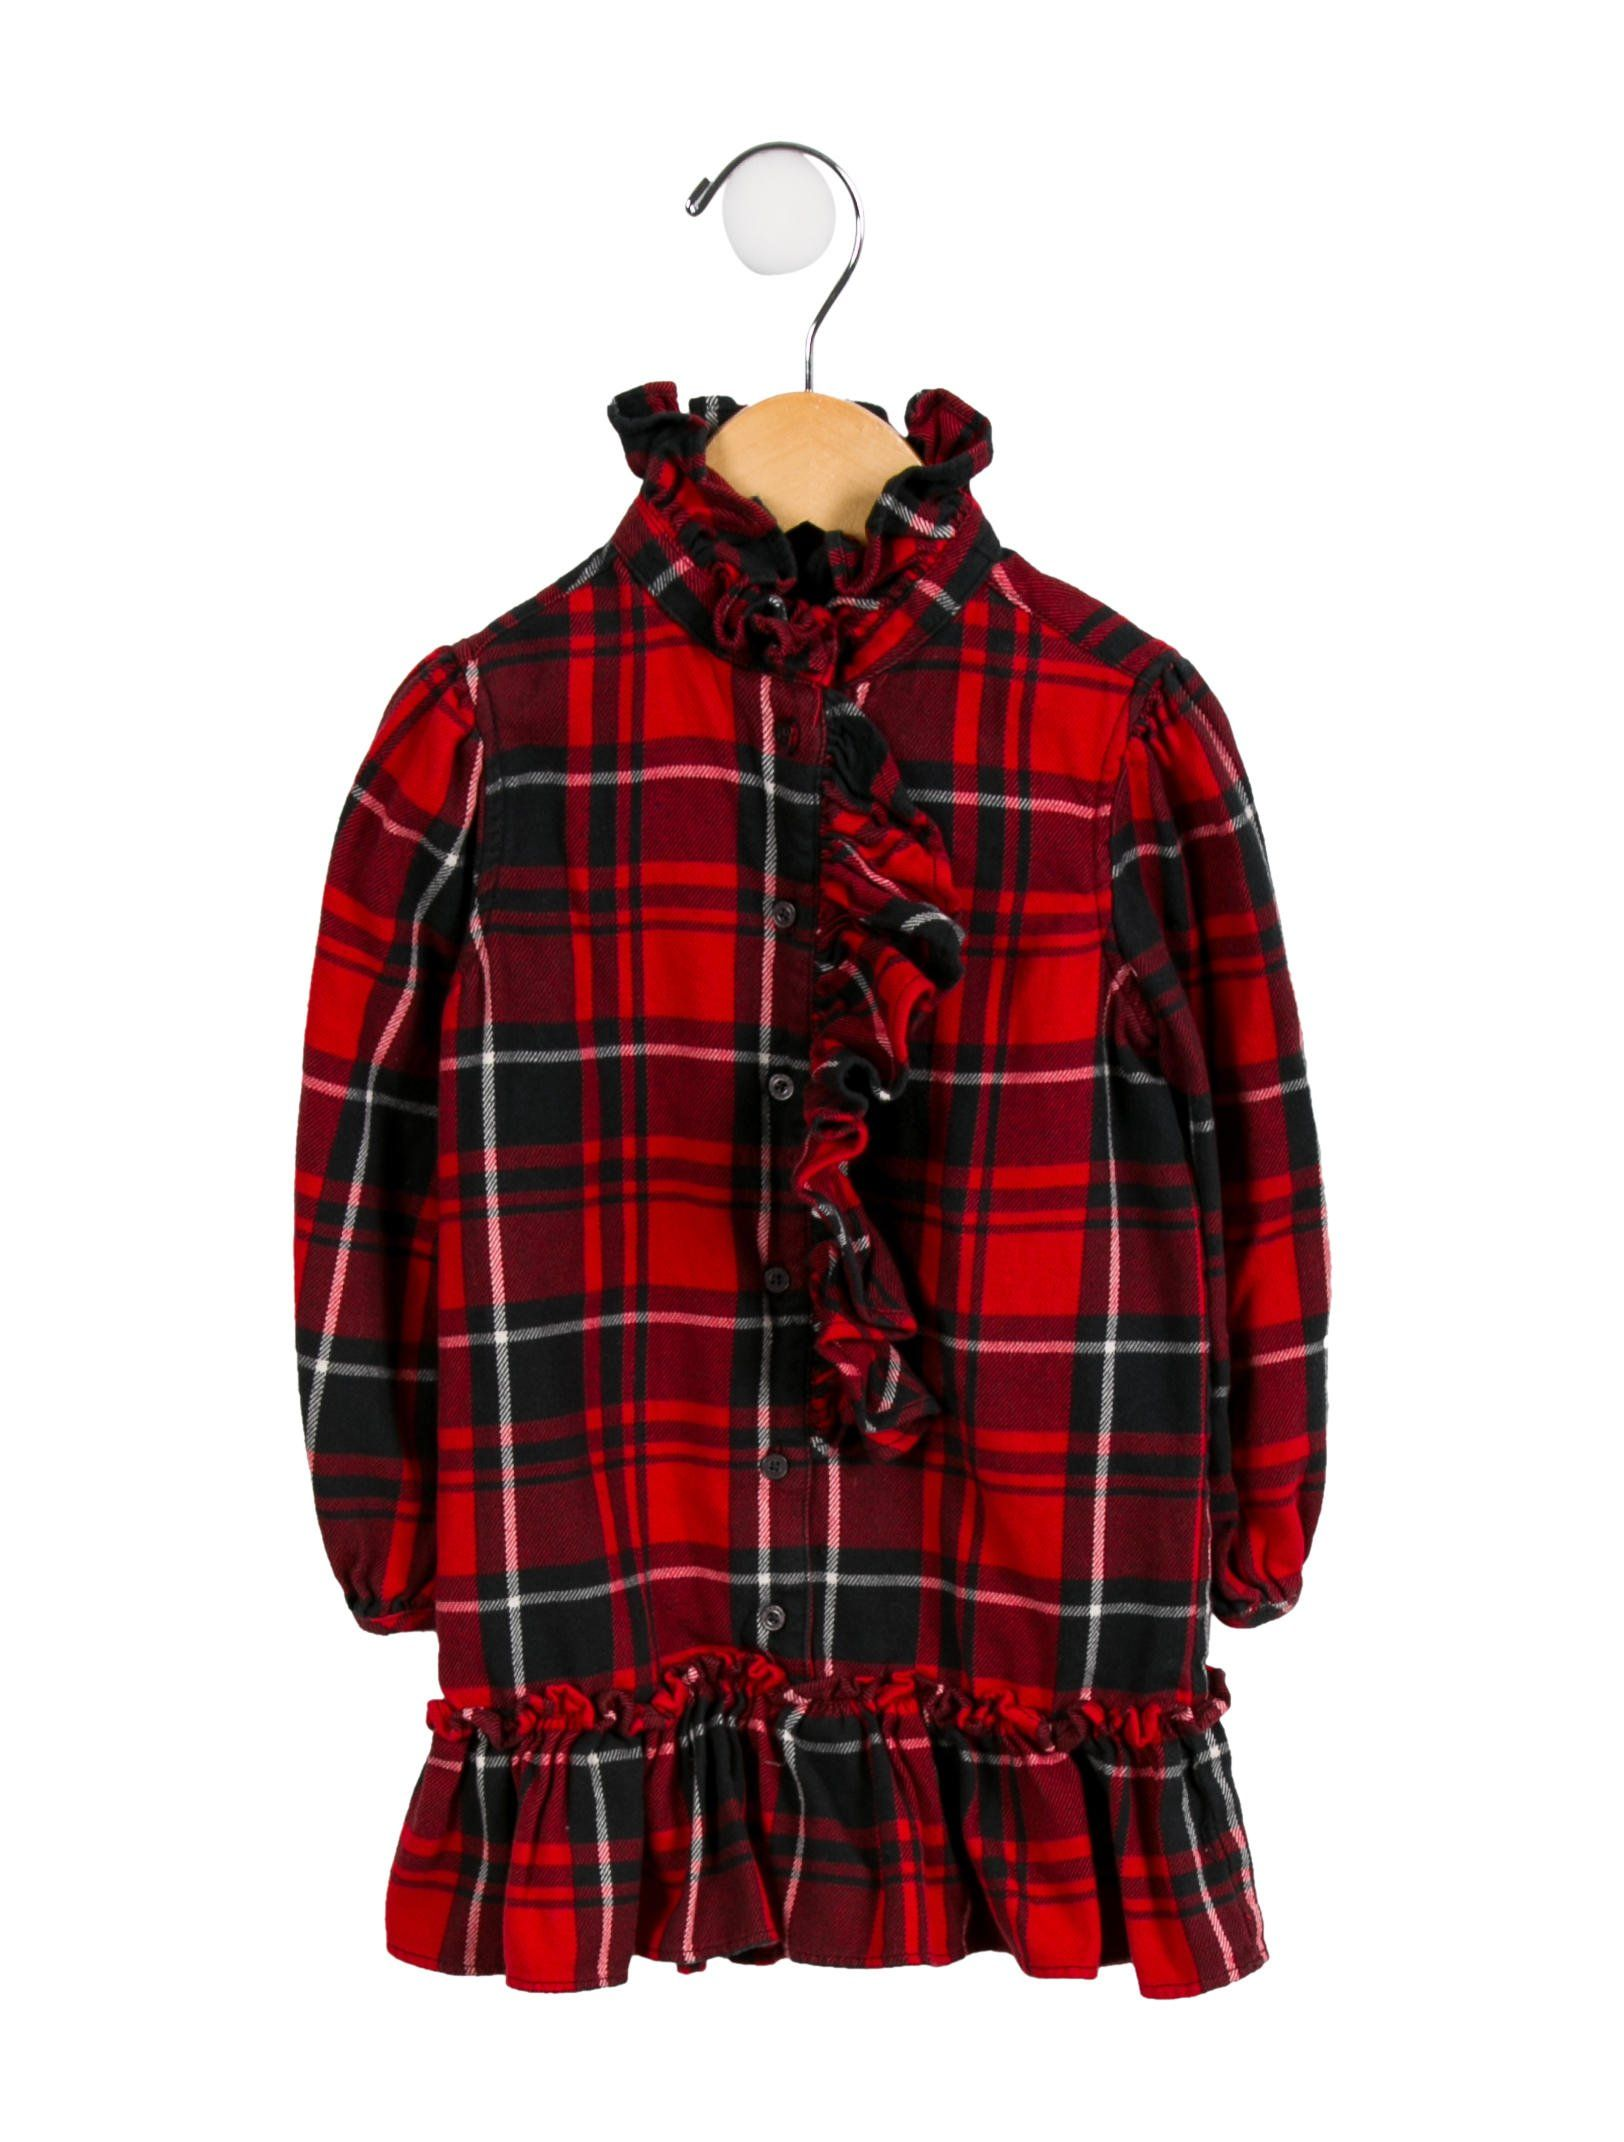 8498cbc70 Girls' red, black and white Ralph Lauren plaid dress with long sleeves,  ruffled trim and button closures at center front. Machine washable.